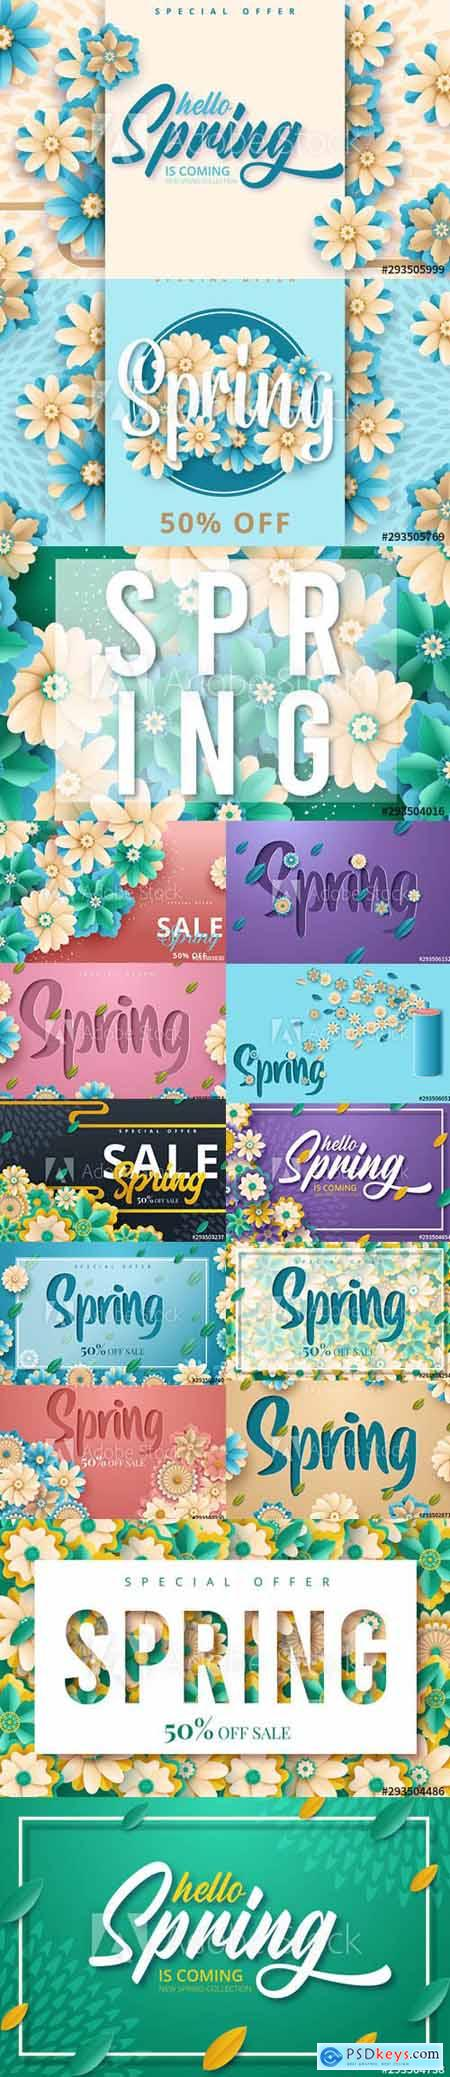 Set of Spring Sale Backgrounds with Flowers vol3